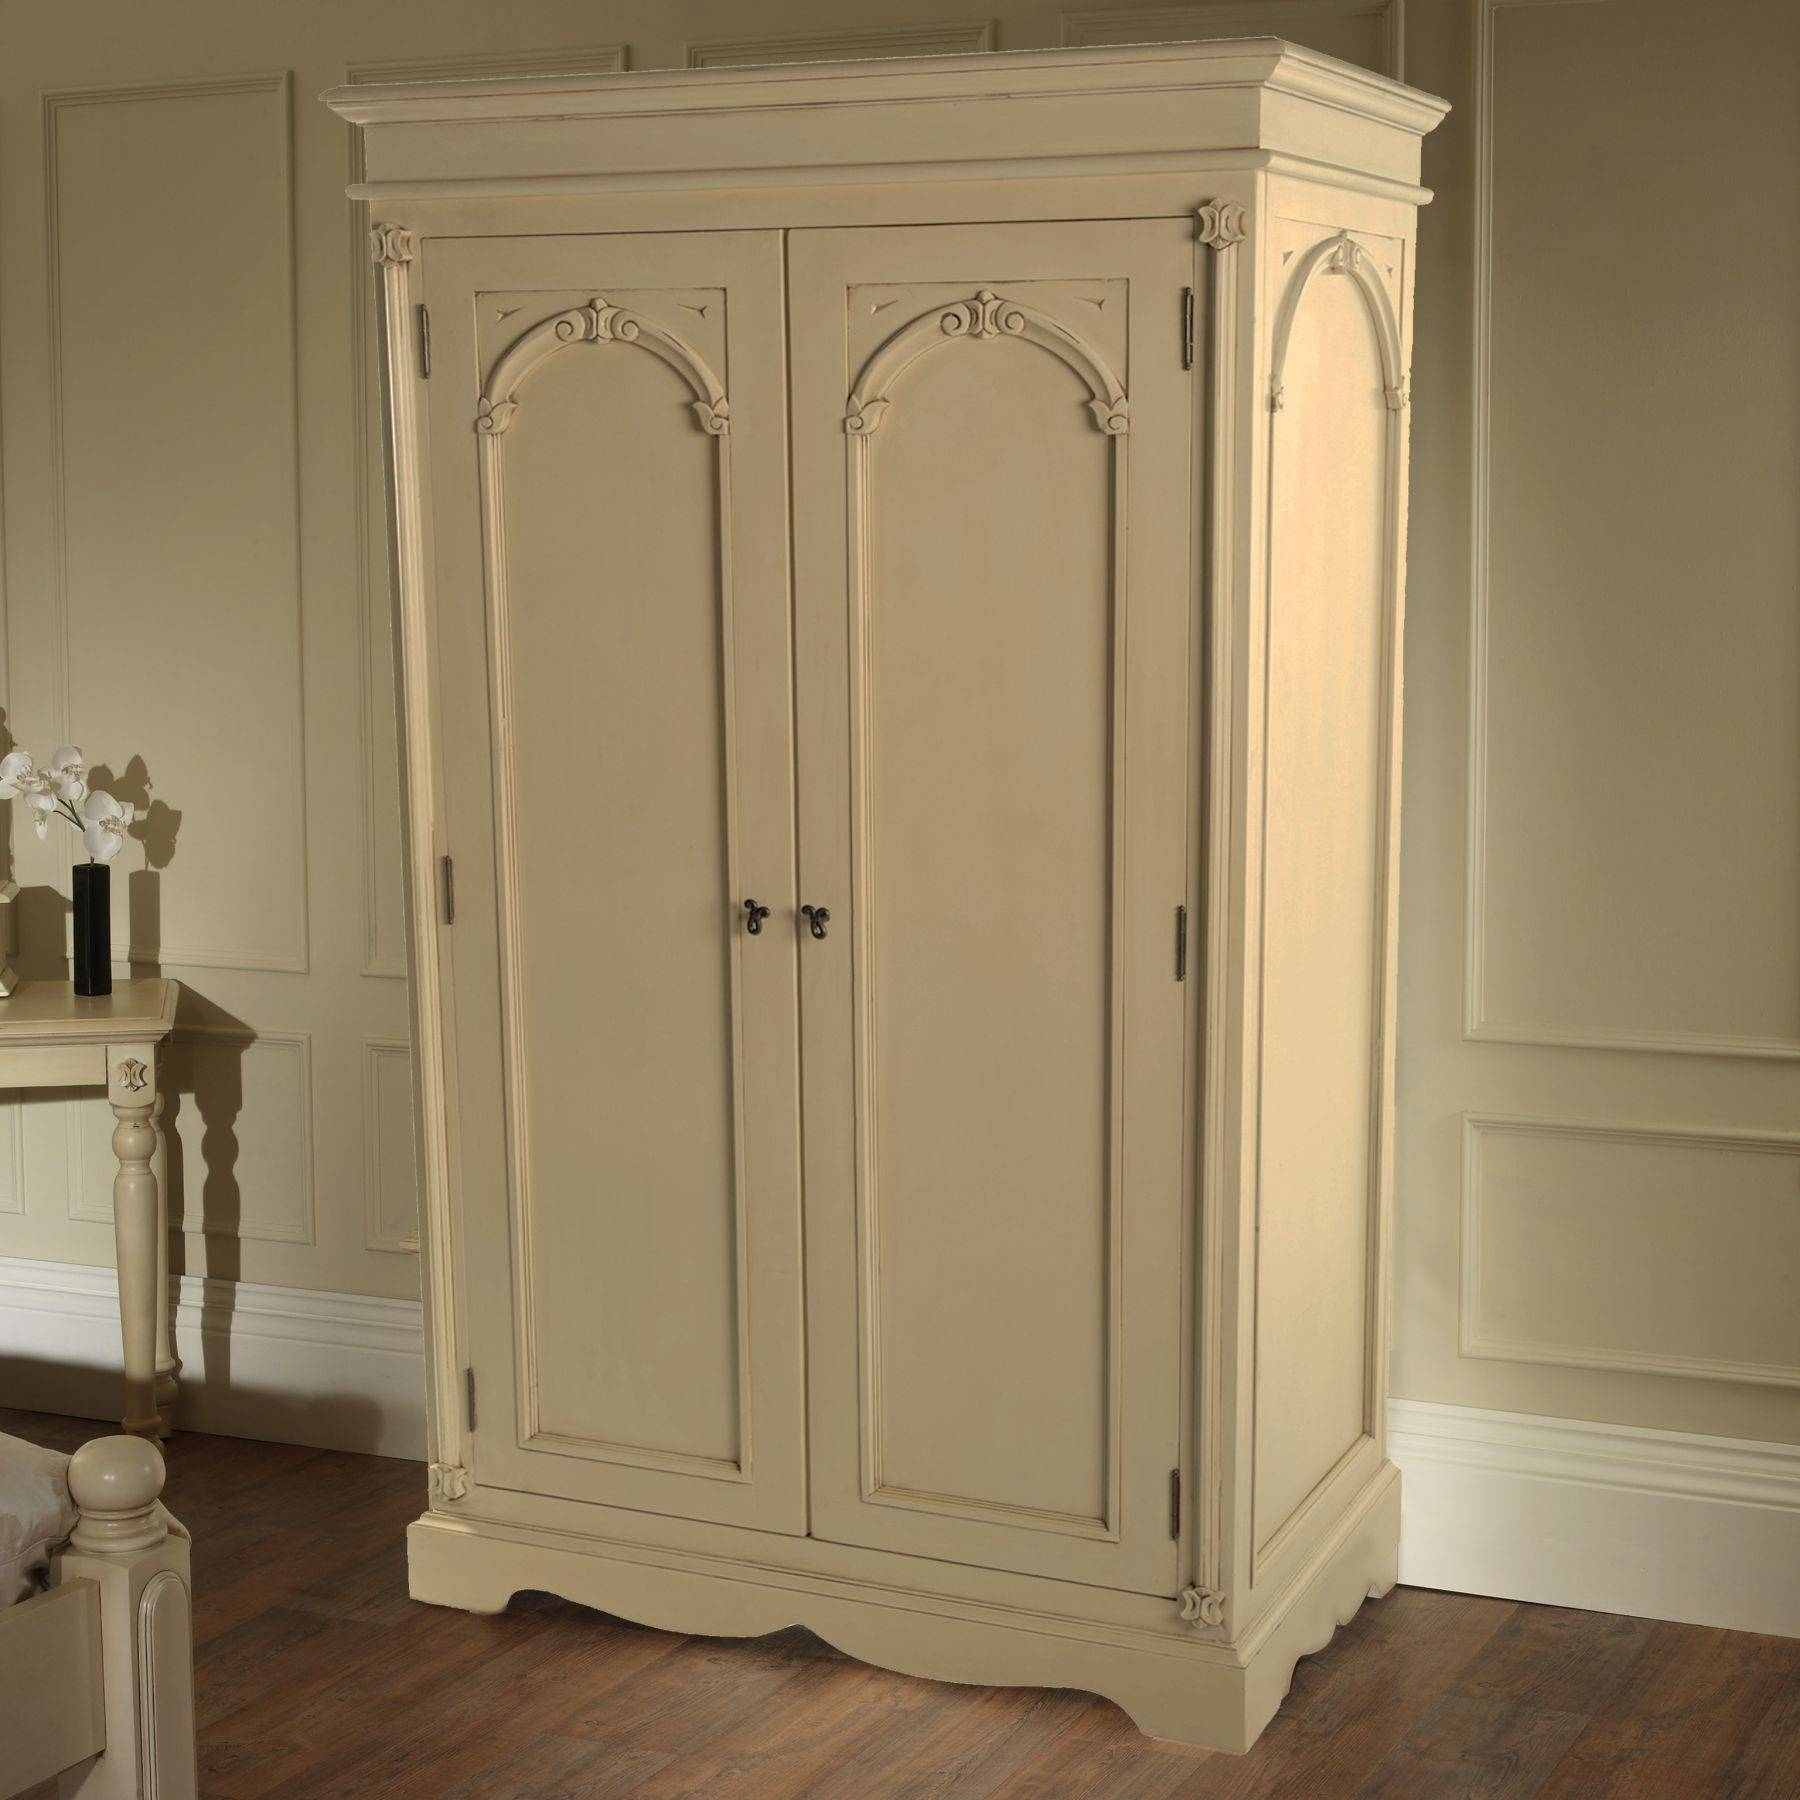 Victorian Antique French Wardrobe Working Well Alongside Our intended for Victorian Style Wardrobes (Image 11 of 15)